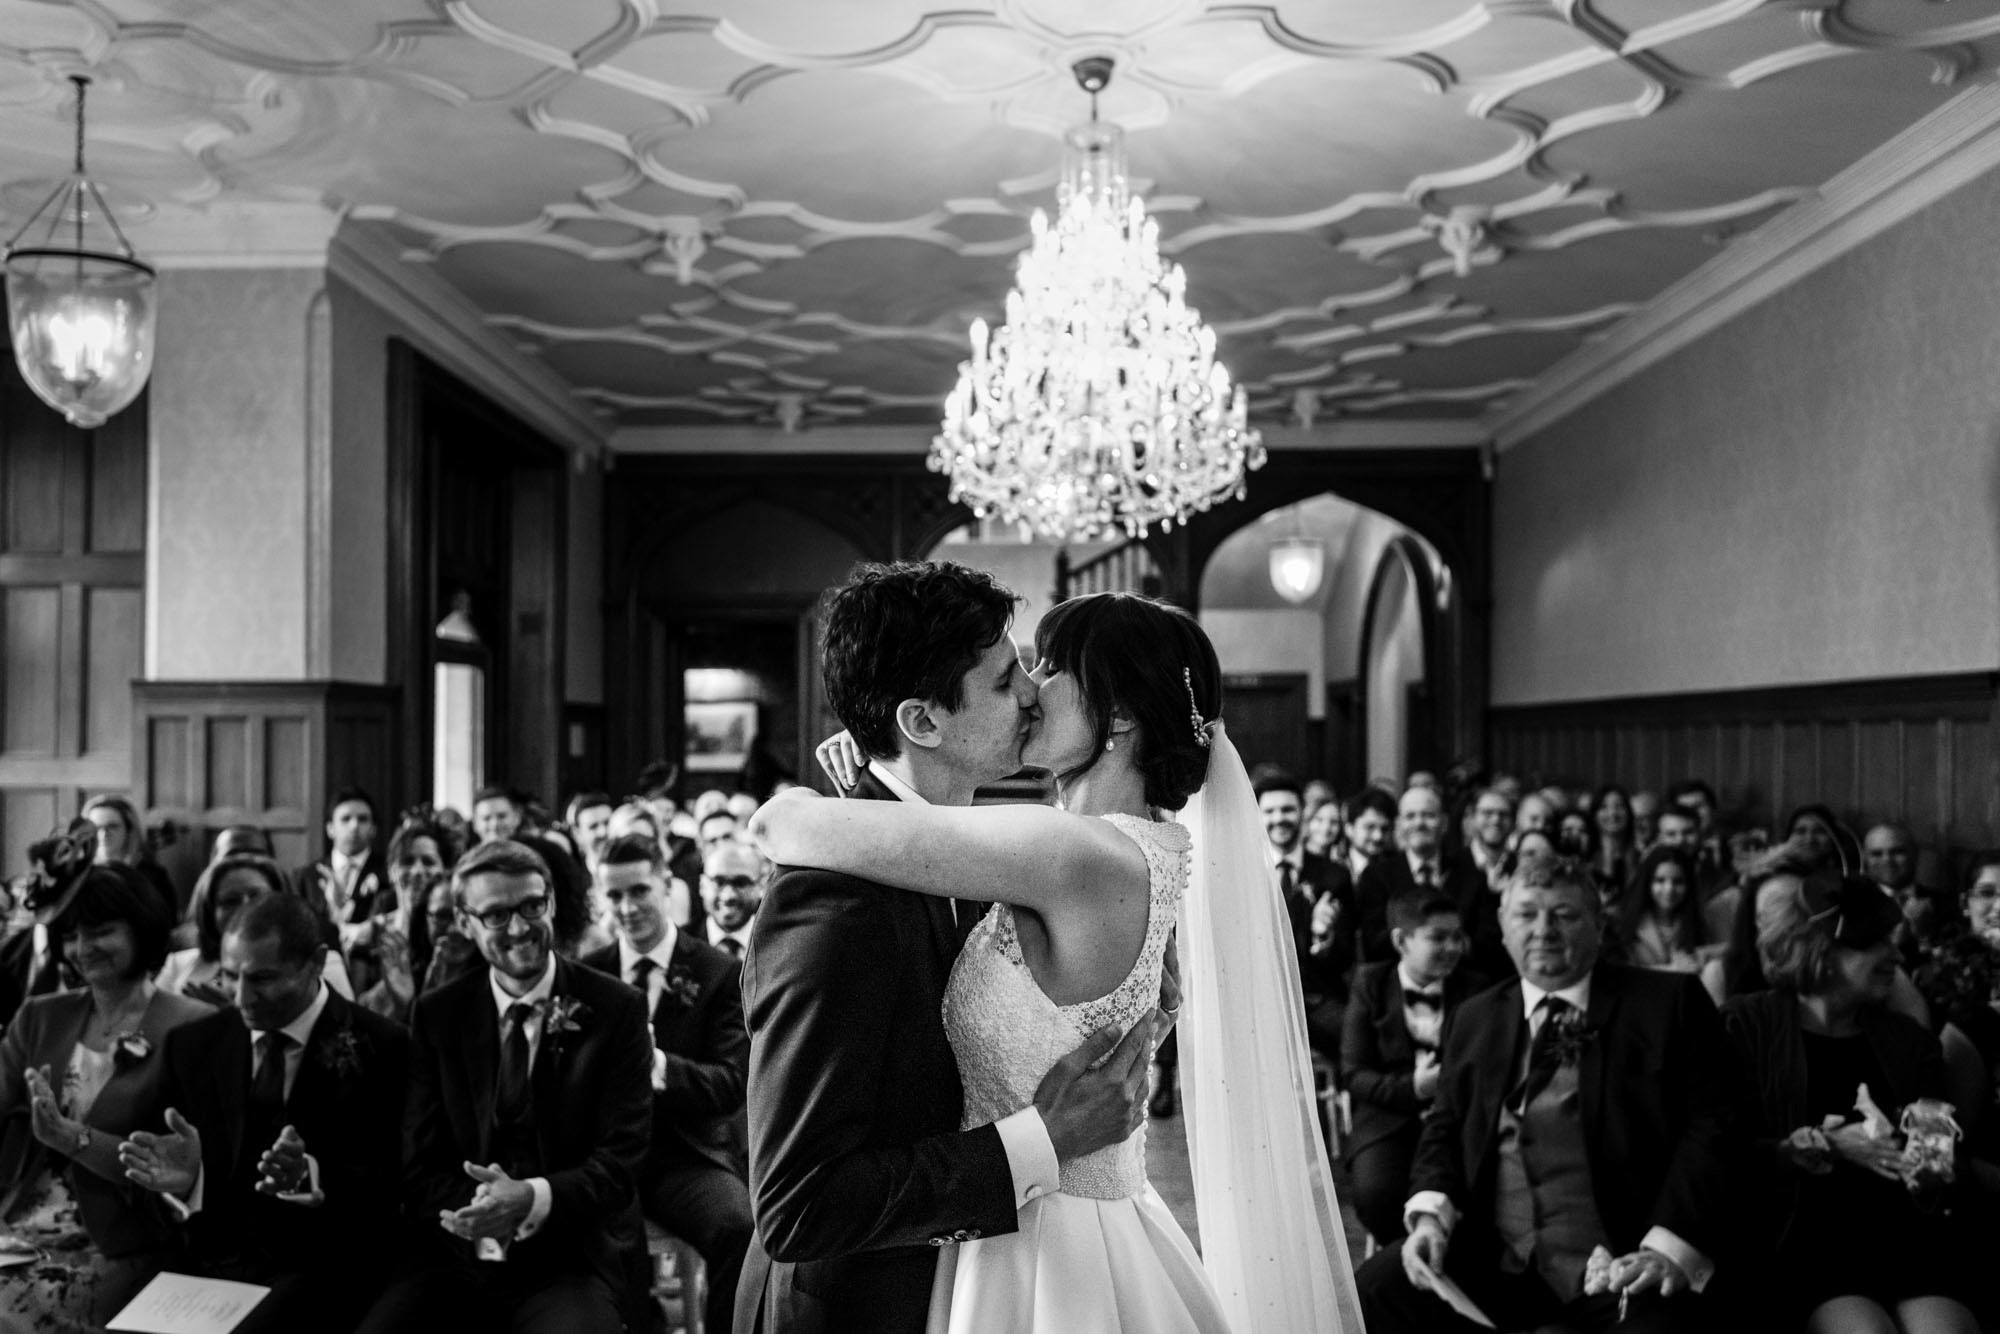 black and White wedding photography-7.jpg